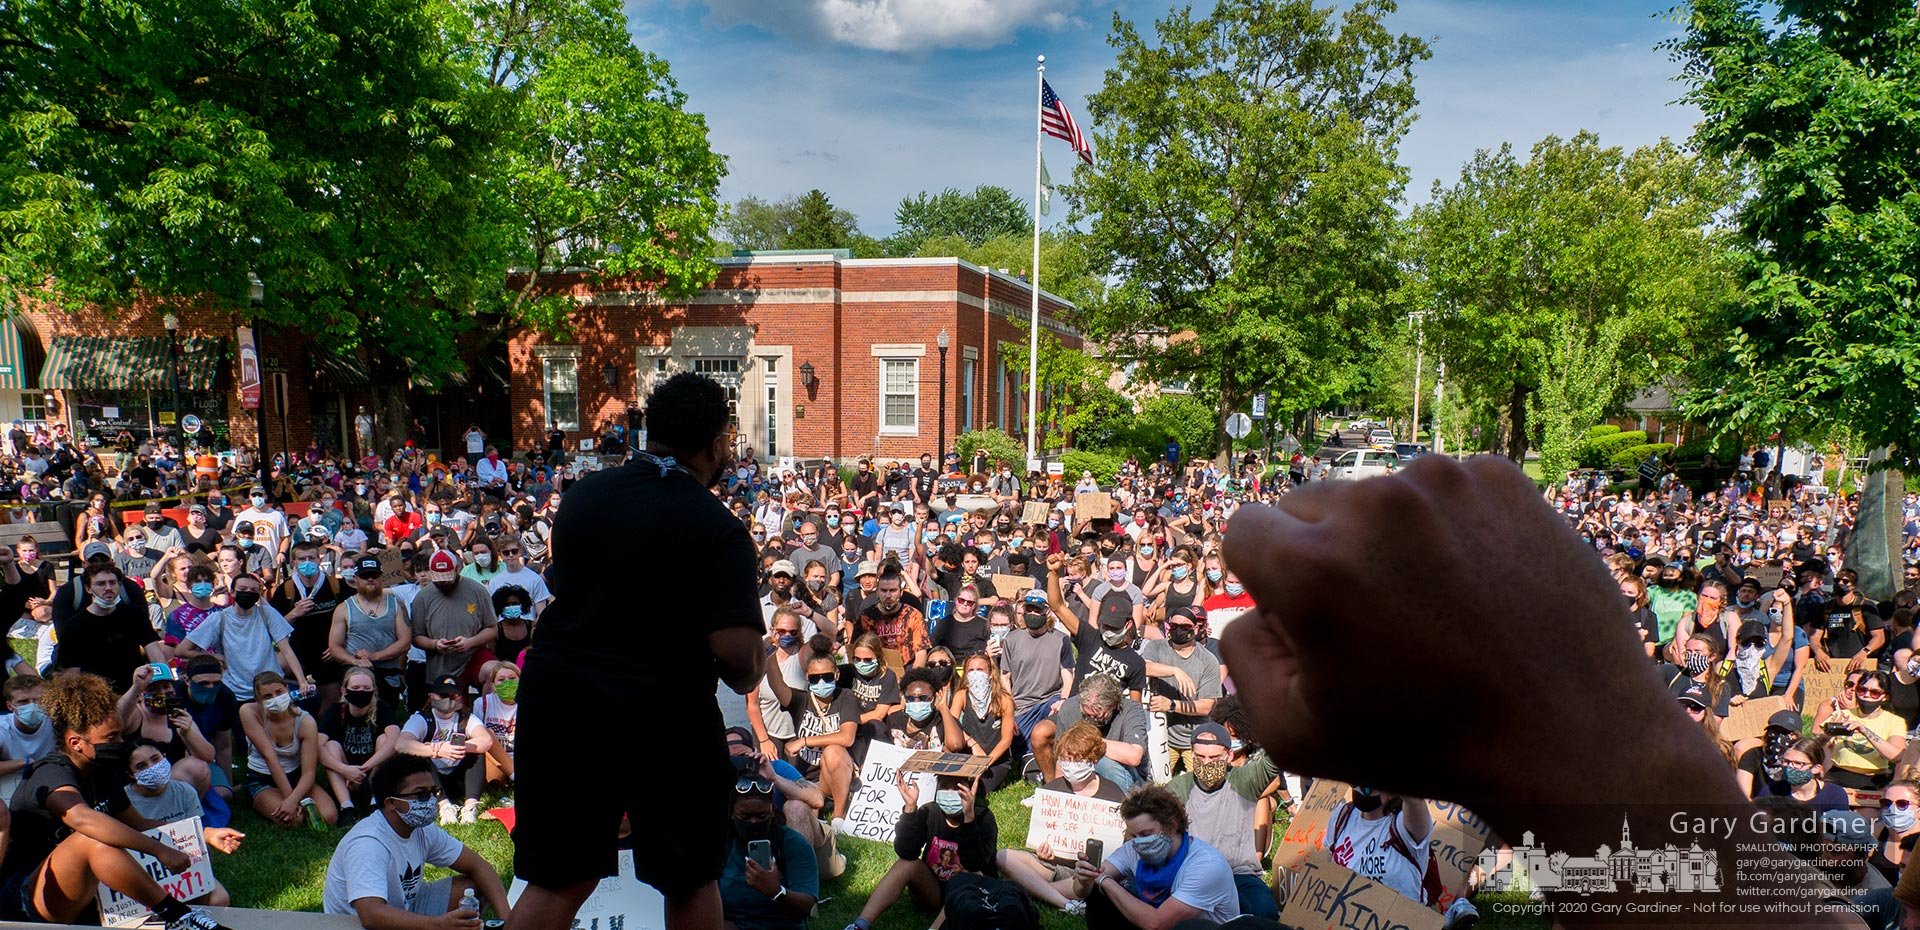 A large crowd gathers at Westerville City Hall after a march from Alum Creek Park as part of a protest for support of the Black Lives Movement and recent protest activity across the country. My Final Photo for June 3, 2020.